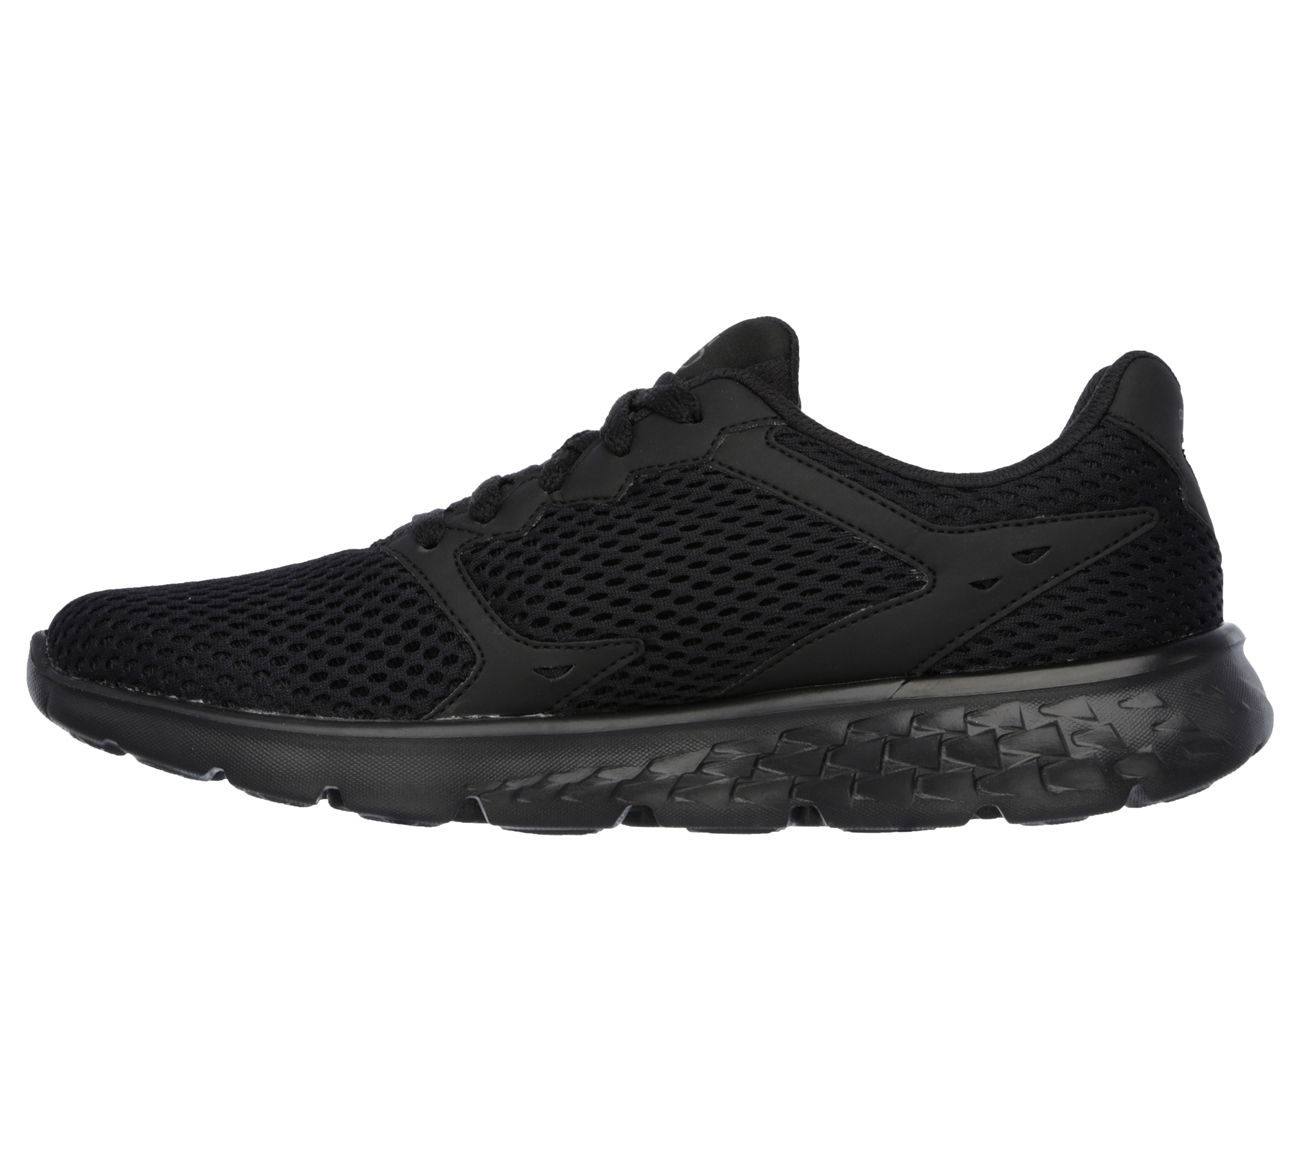 skechers go run 400. skechers-14350-bbk-women-039-s-gorun-400- skechers go run 400 h